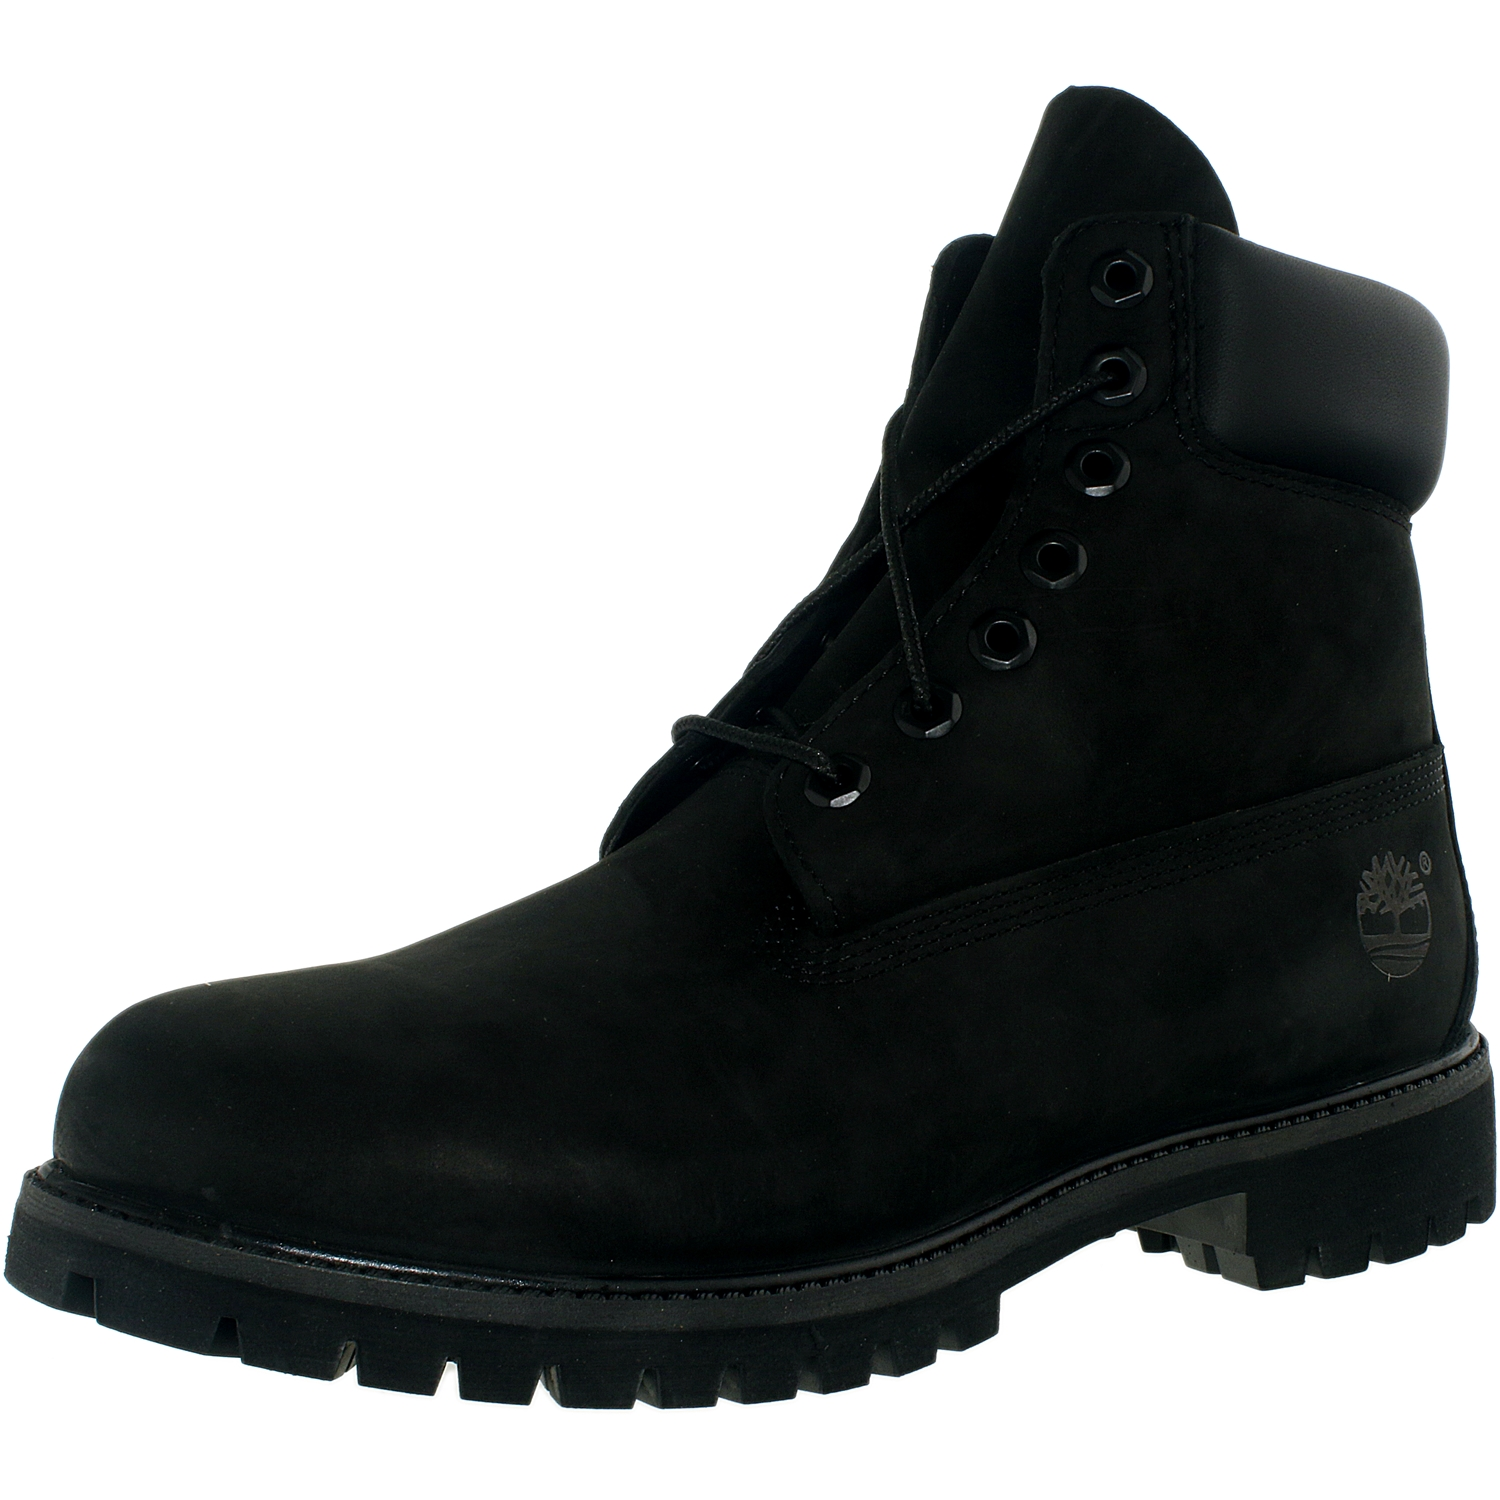 Timberland Men's 6 Inch Premium Boot Leather Ankle-High Leather Boot by Timberland